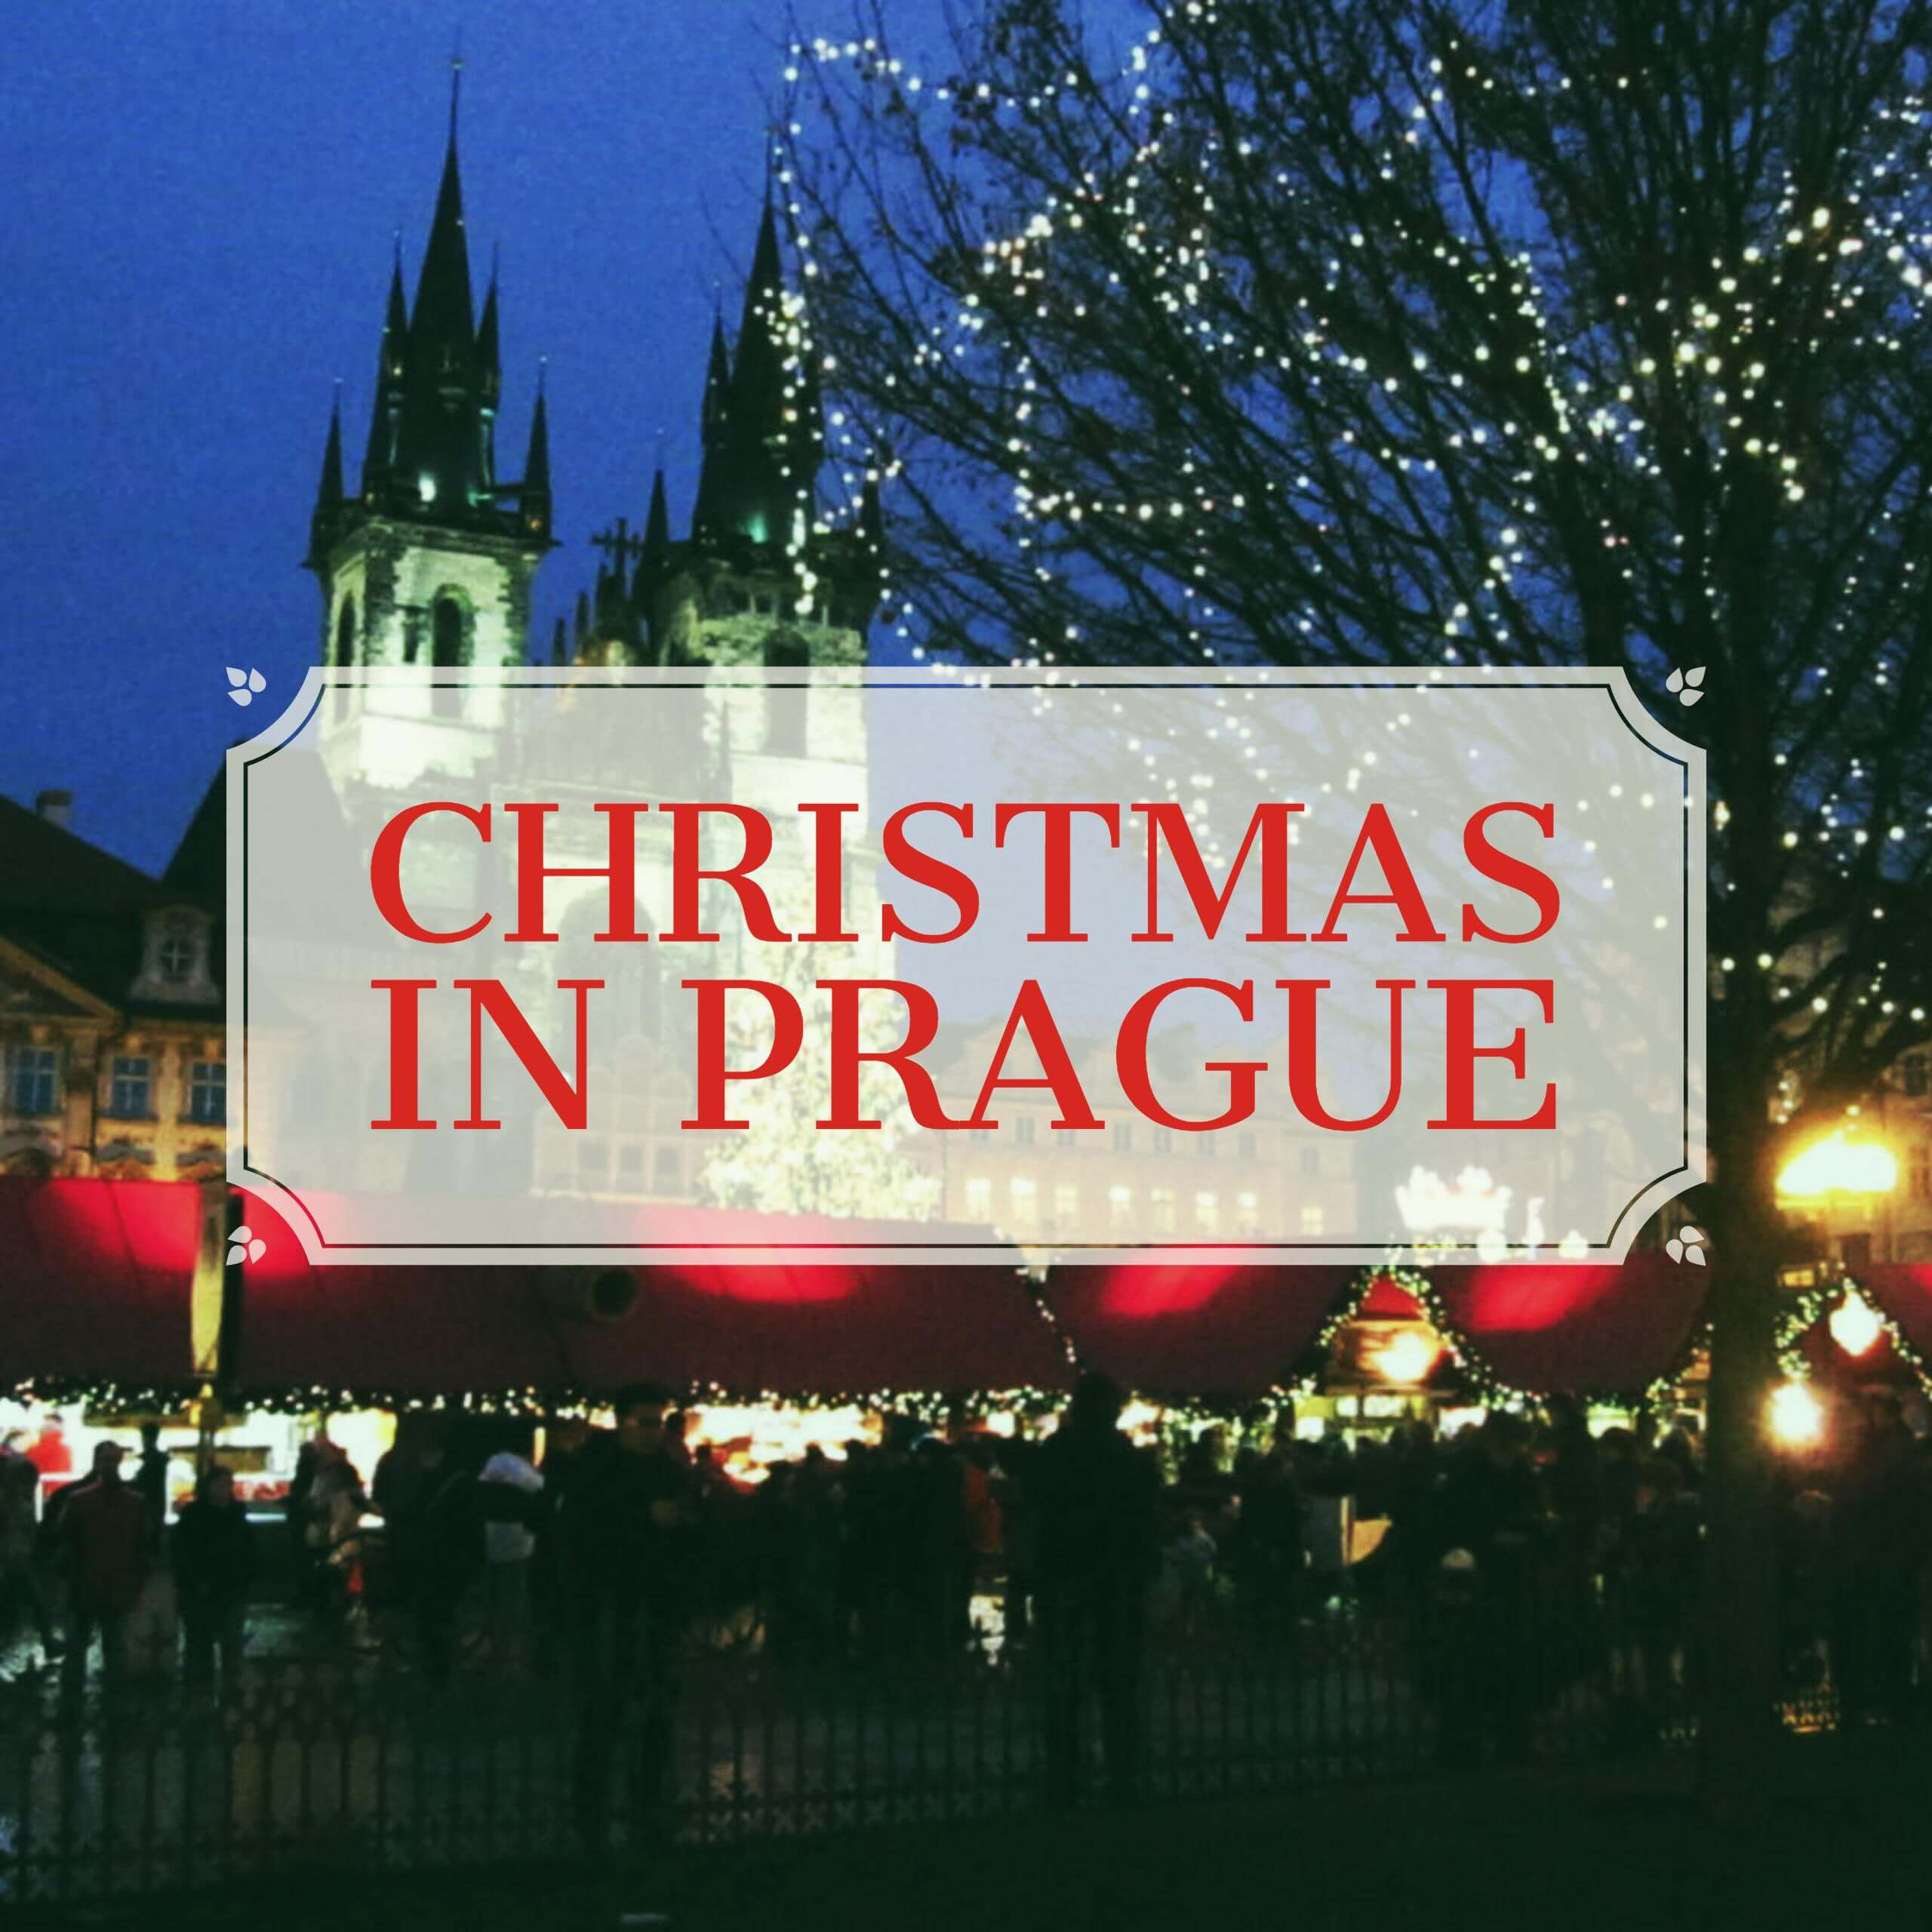 Christmas in Prague banner